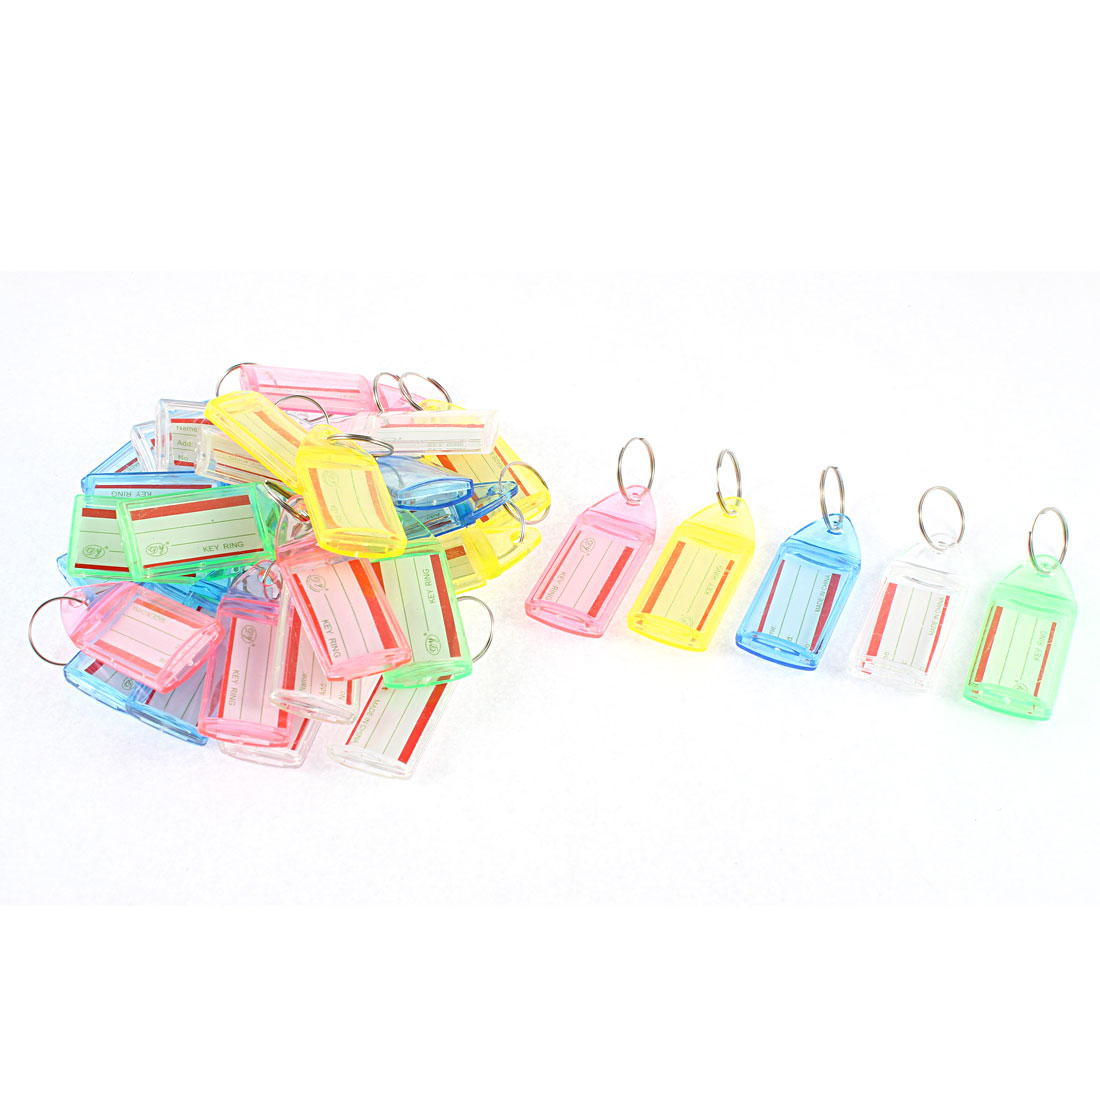 30 Pcs Plastic ID Label Name Tag Metal Split Ring Key Fobs Luggage Keyring Keychain Multicolor